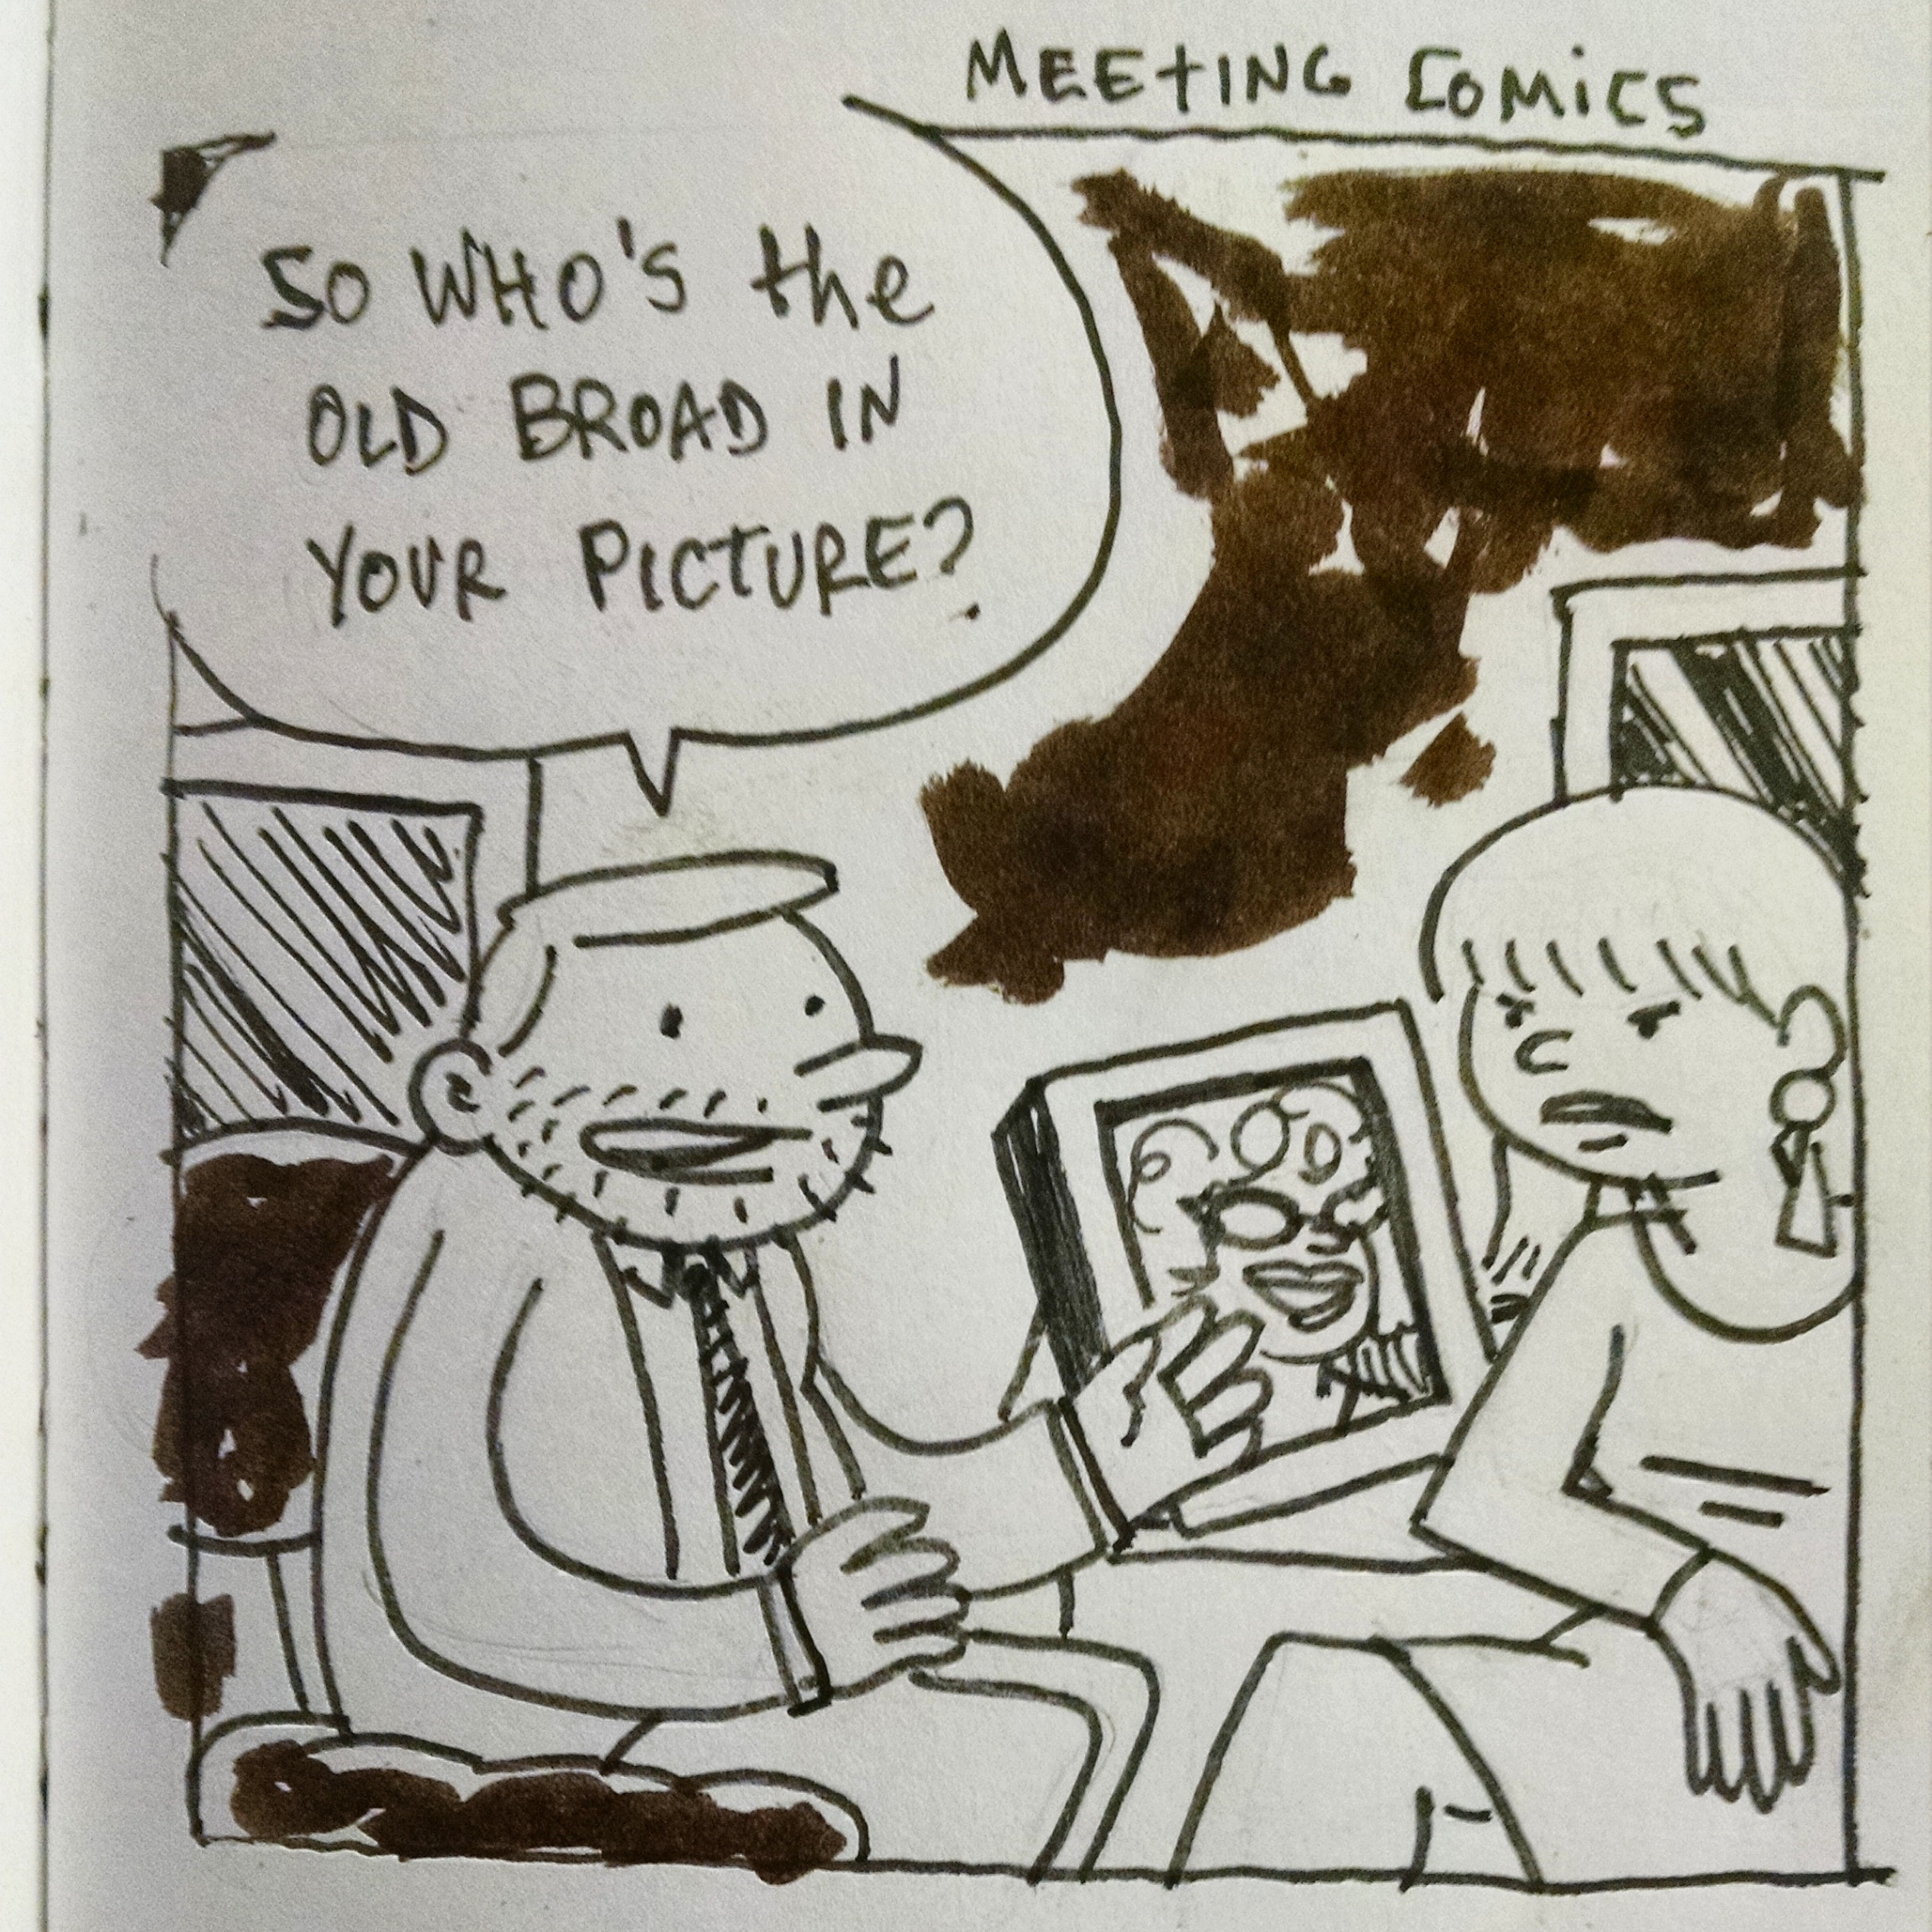 Meeting Comics July 20 PREVIEW!